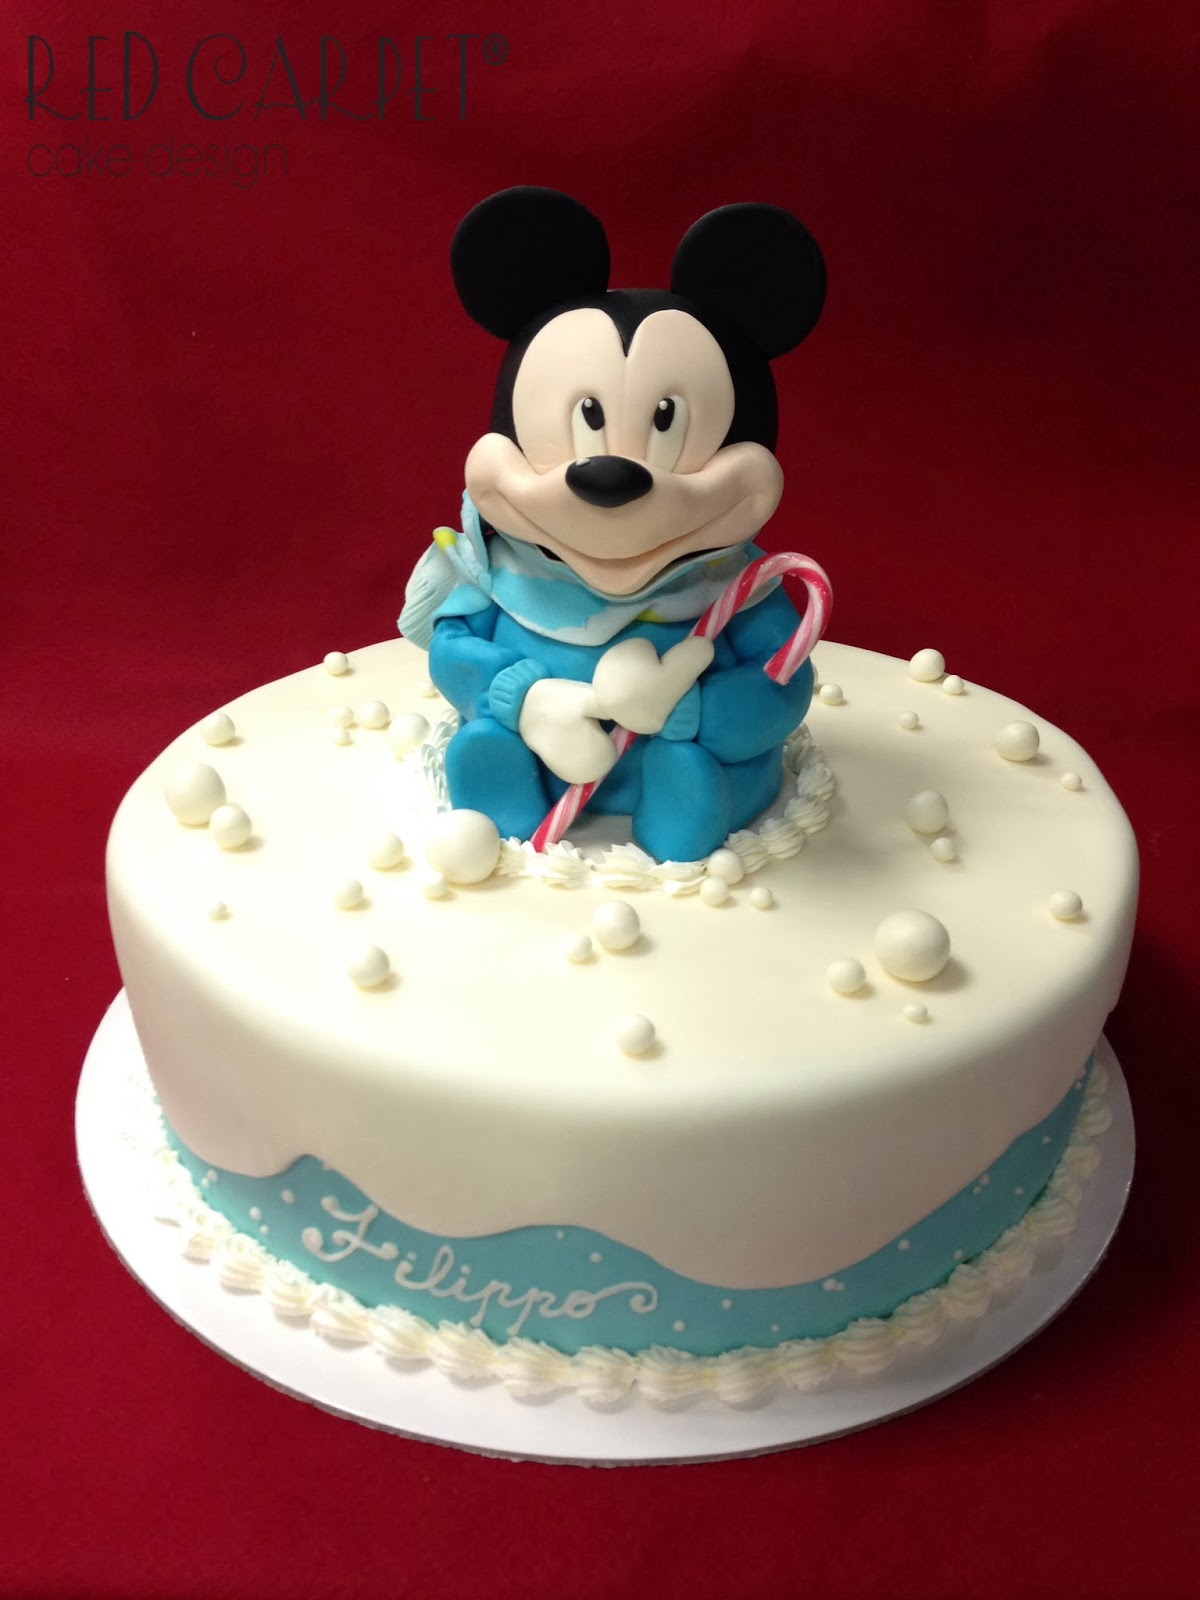 Baby Mickey Mouse Xmas Cake By Red Carpet Cake Design Red Carpet